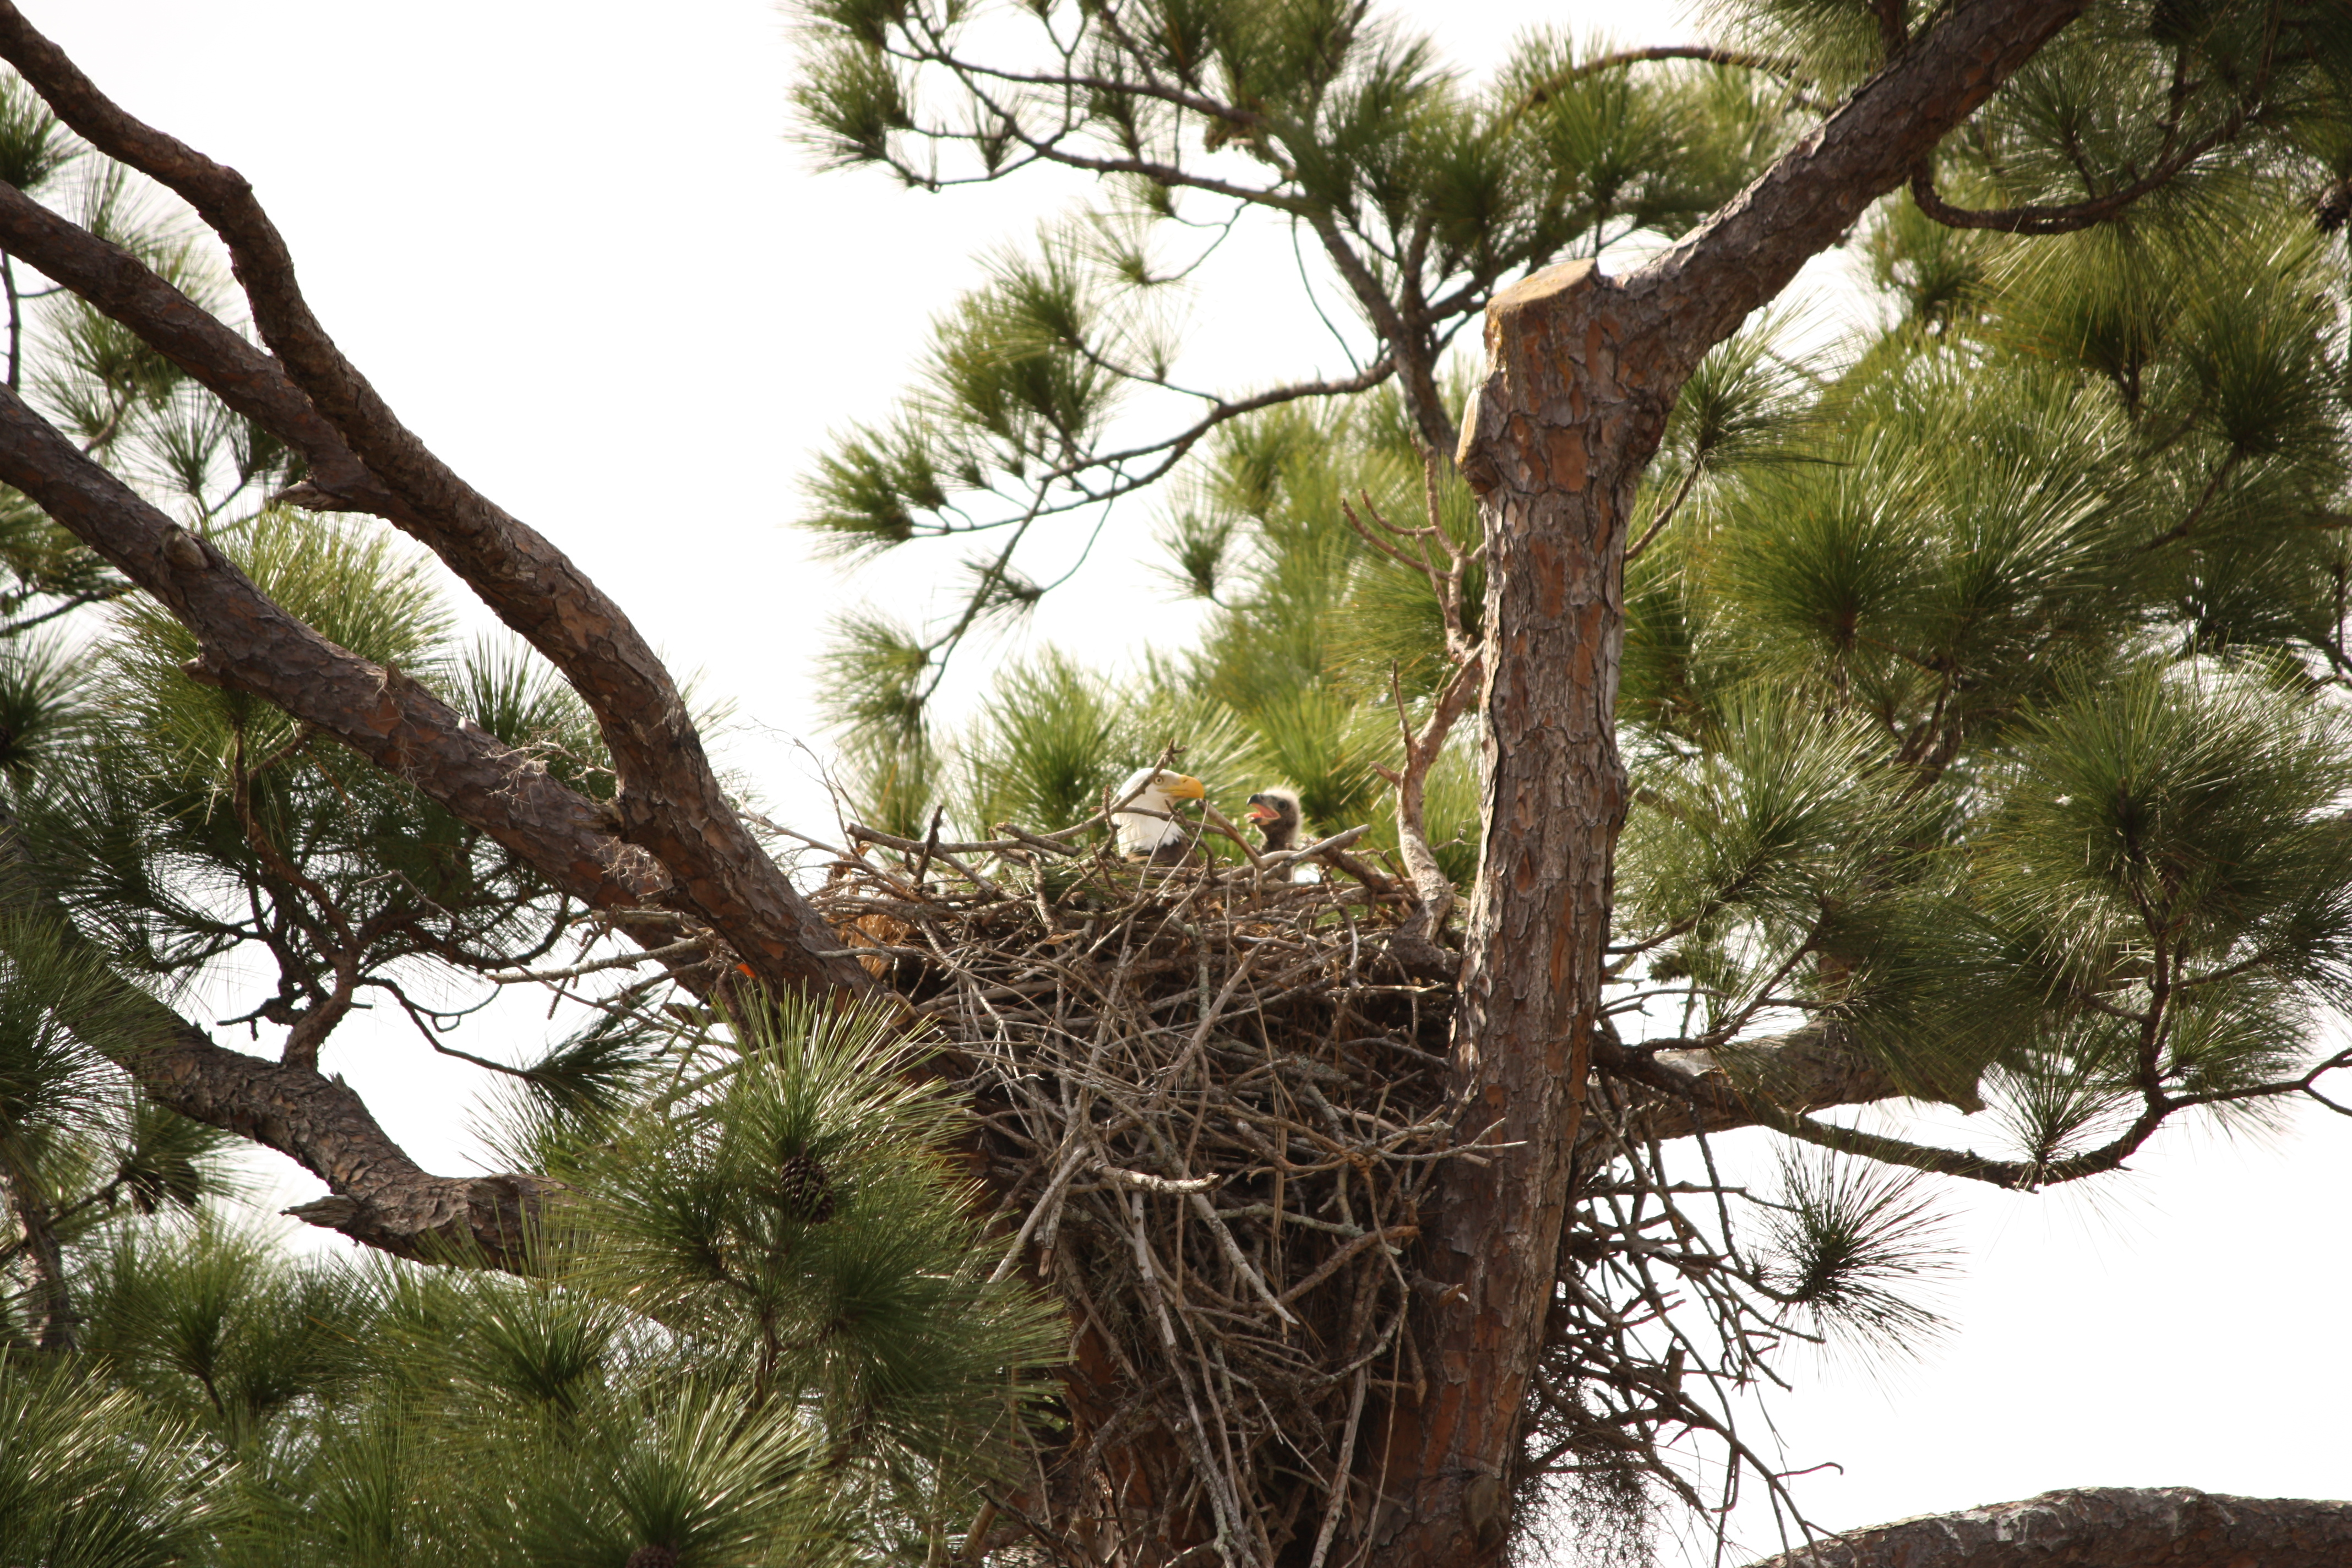 File:Baby Bald Eagle in nest.jpg - Wikimedia Commons